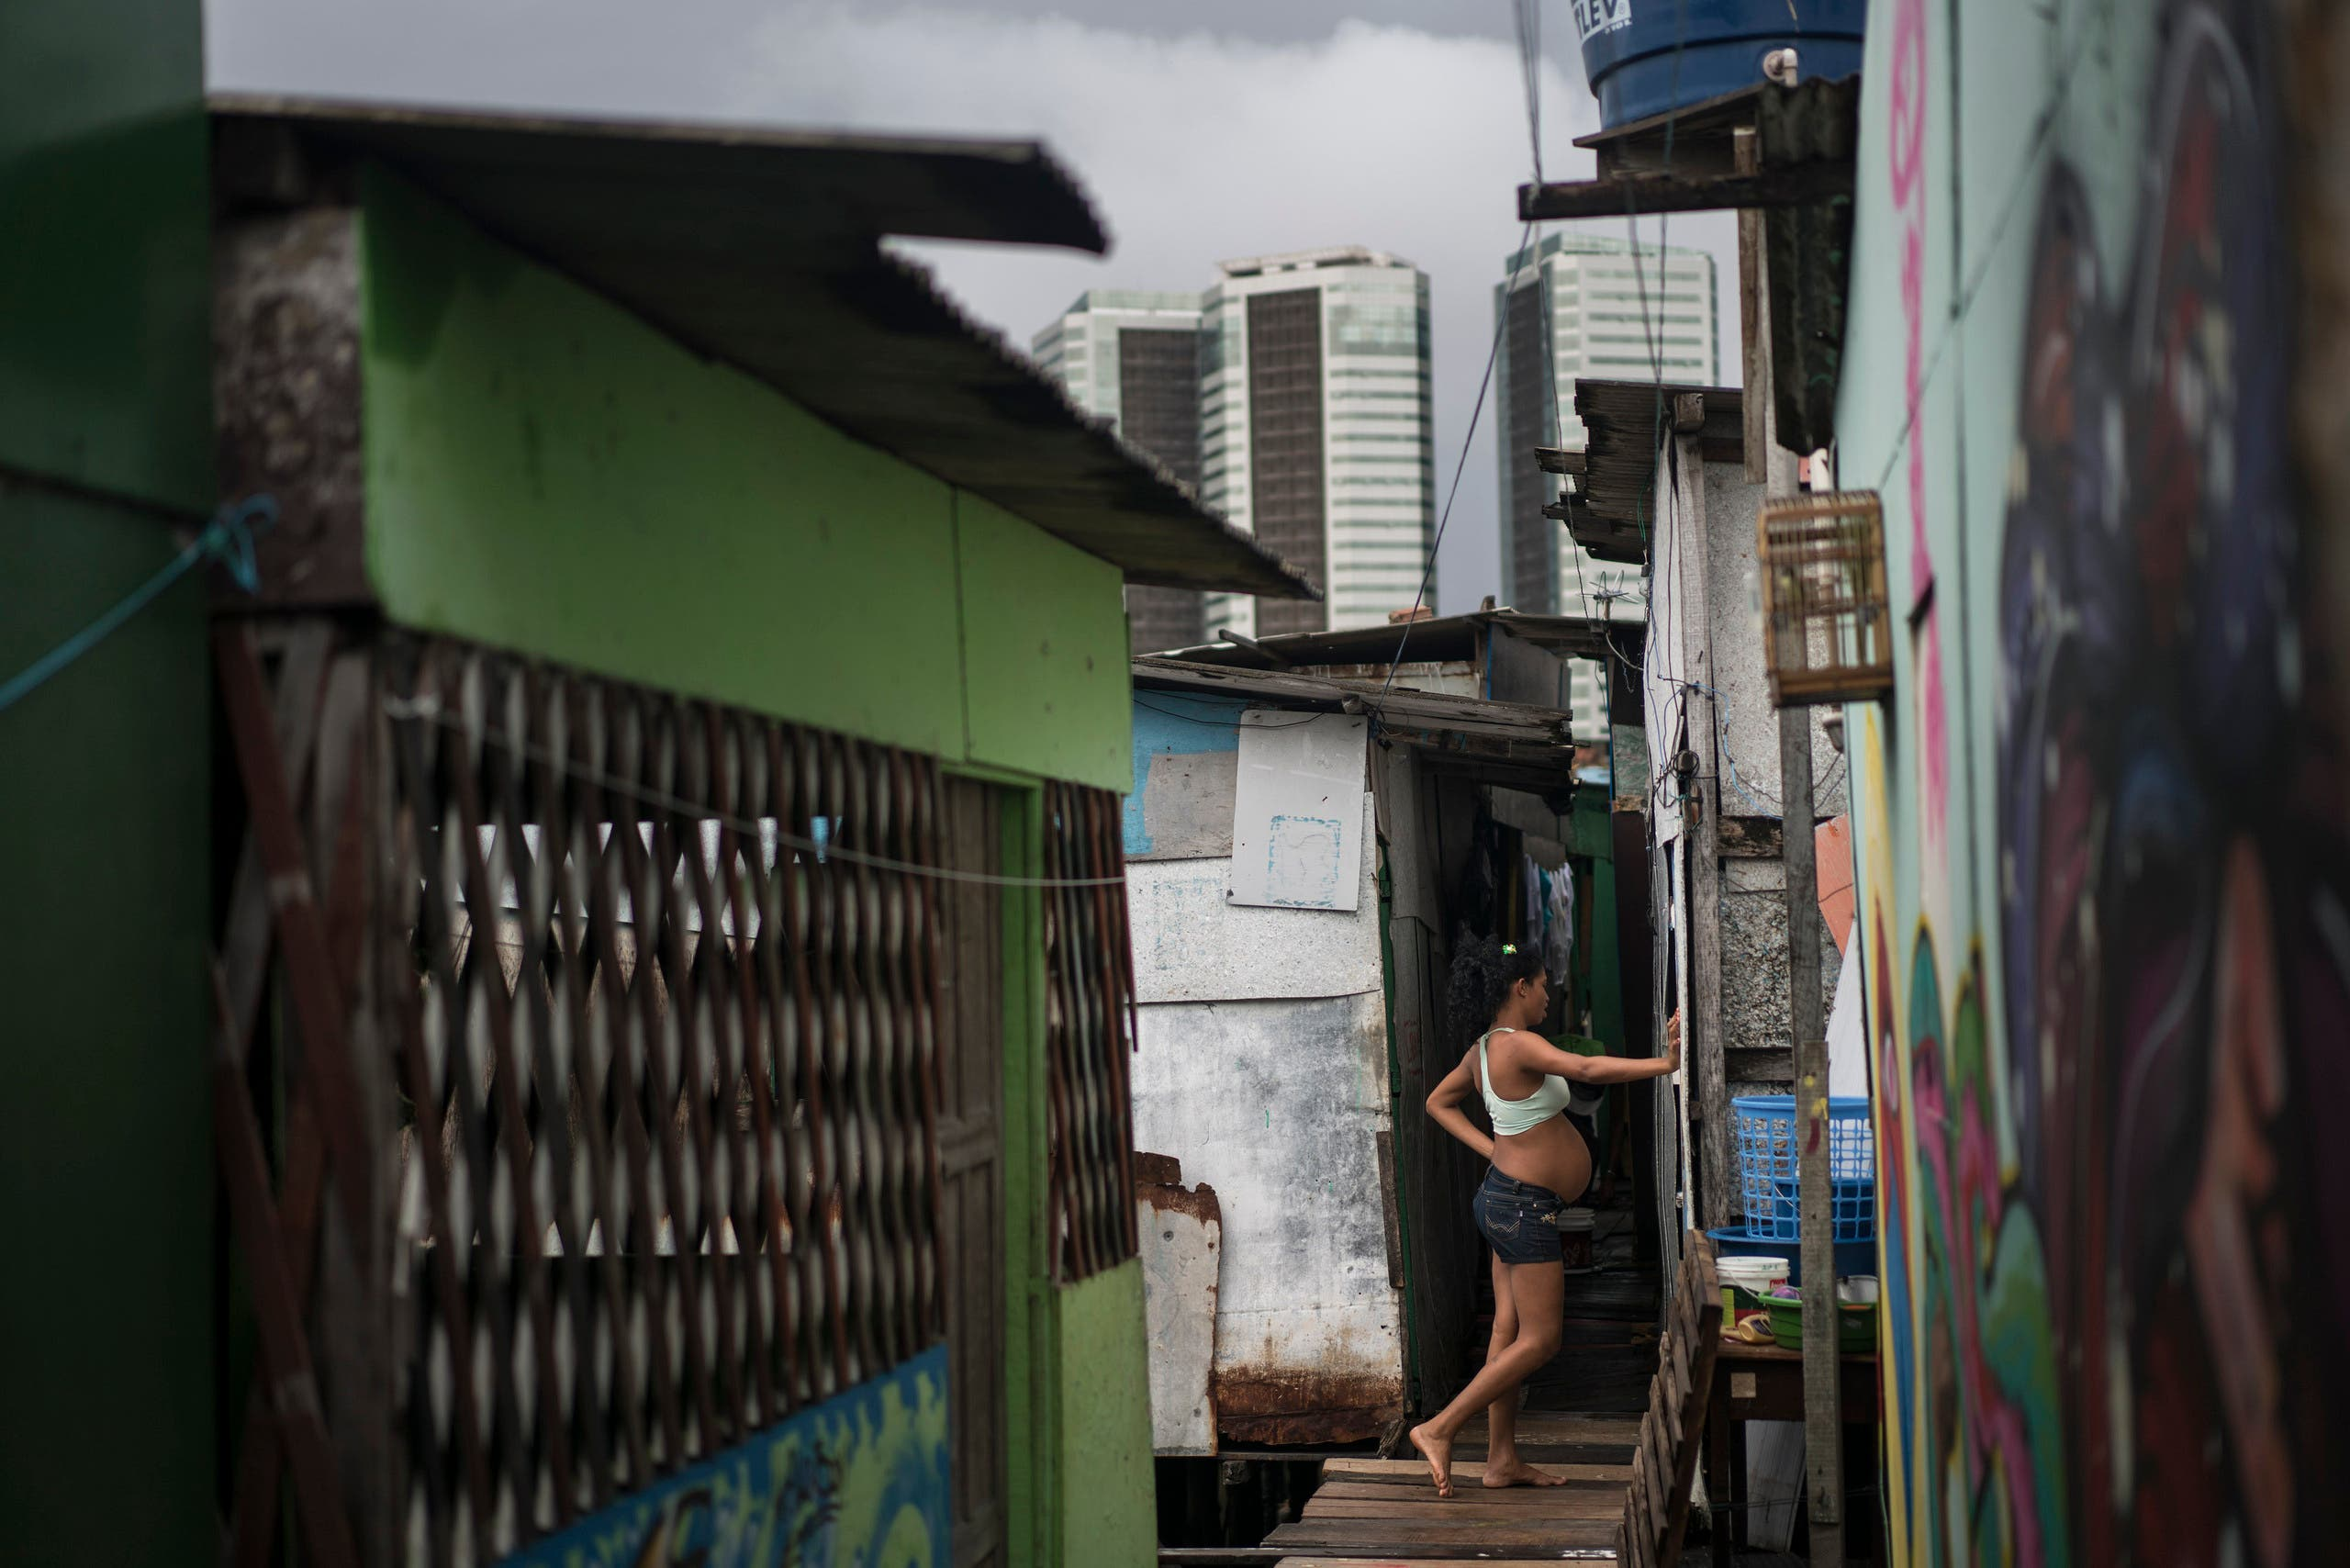 In this Jan. 29, 2016 photo, Tainara Lourenco, who is five months pregnant, stands outside her stilt home, built over a polluted body of water at a slum in Recife, Brazil.